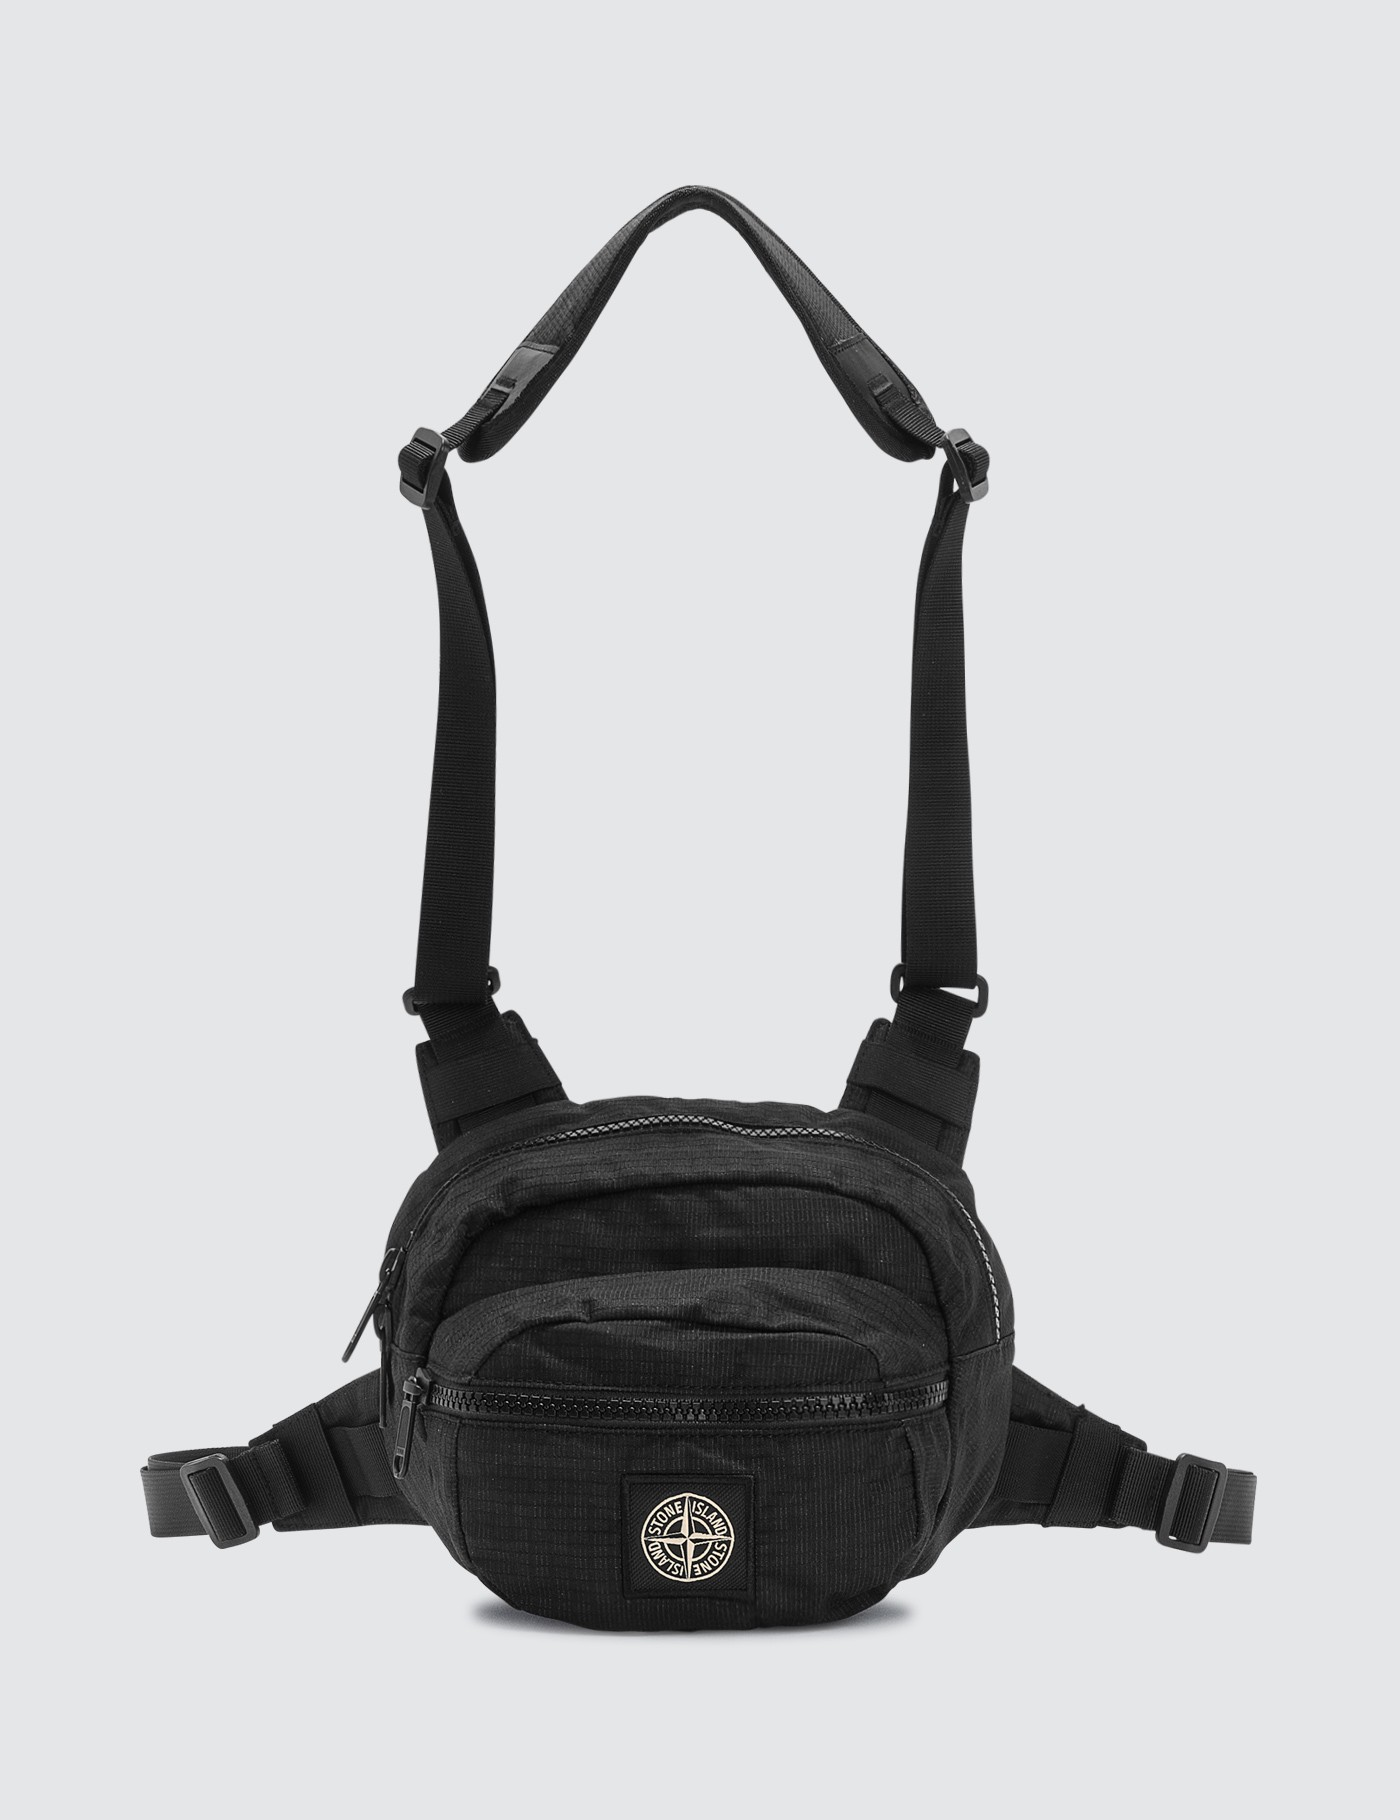 Reflective Weave Ripstop Fanny Pack